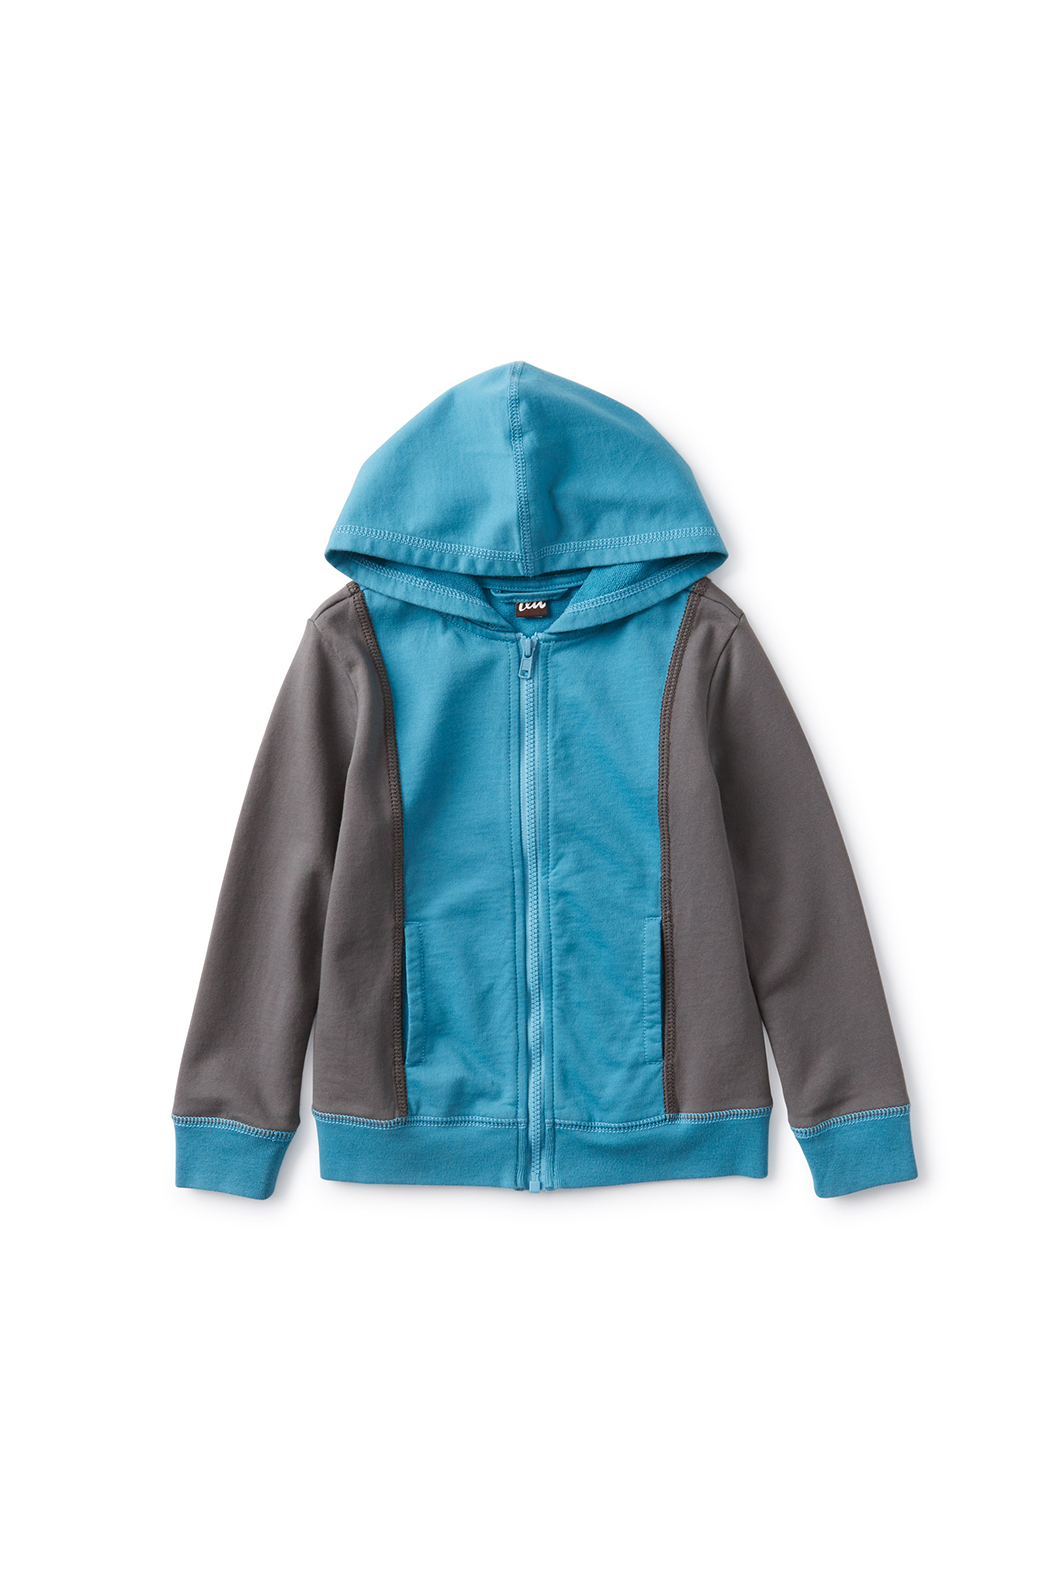 Tea Collection  Colorblock Hoodie - Nordic Blue - Main Image